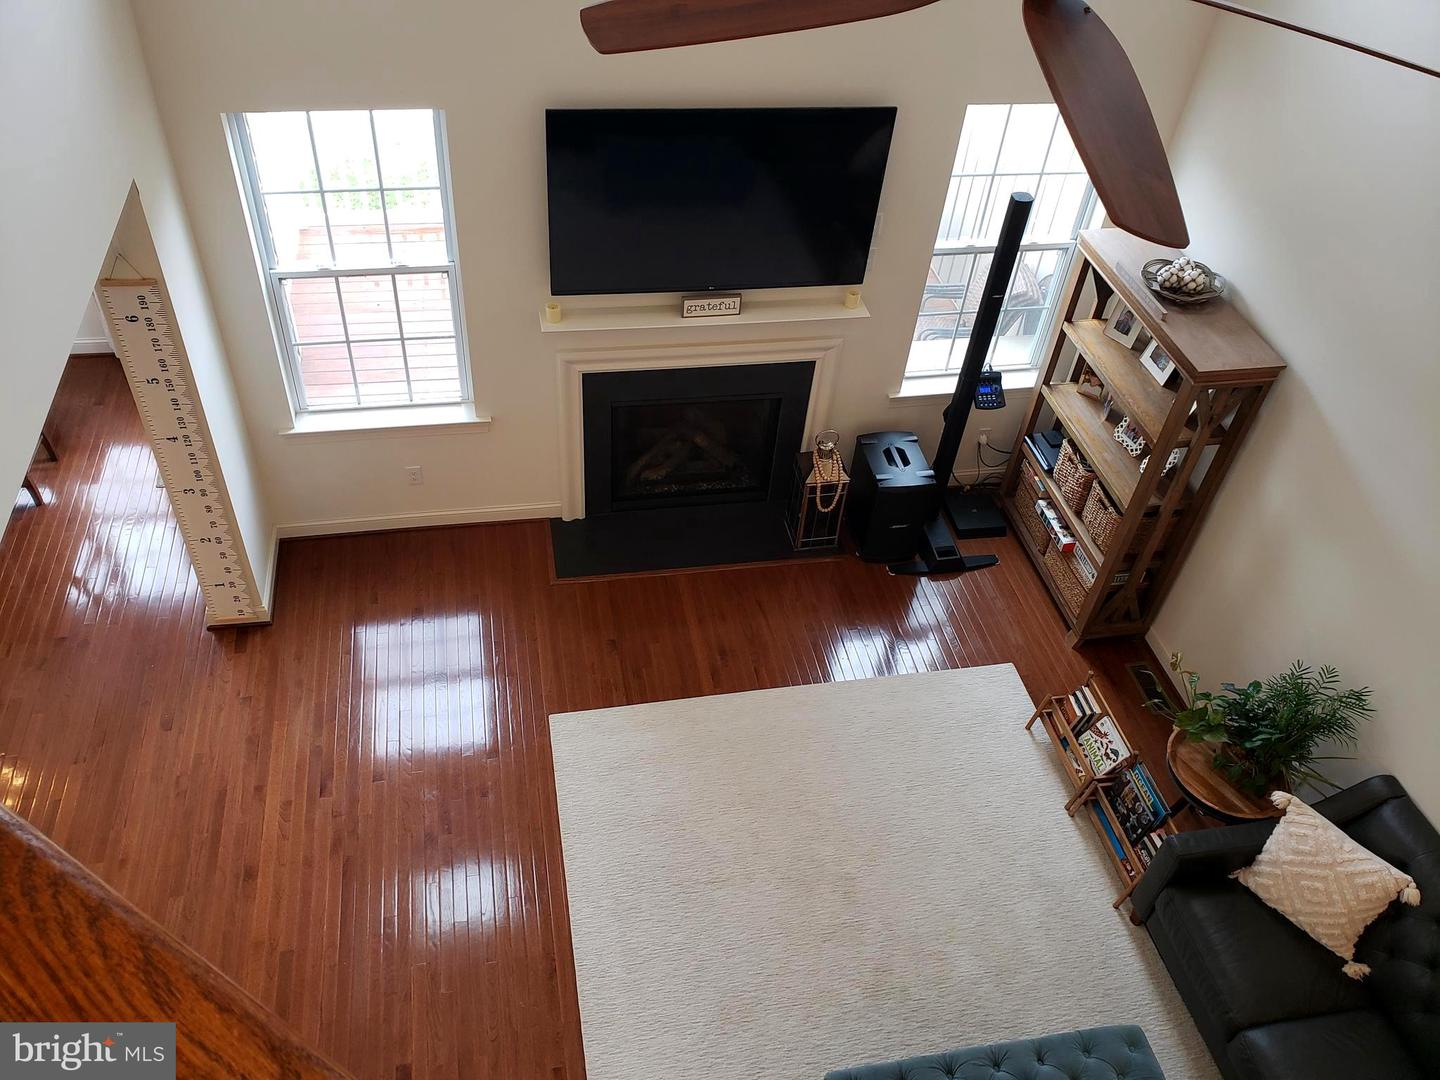 2047 PLEASANT VALLEY DR, LANSDALE, Pennsylvania 19446, 3 Bedrooms Bedrooms, ,3 BathroomsBathrooms,Townhouse,For Sale,2047 PLEASANT VALLEY DR,PAMC684516